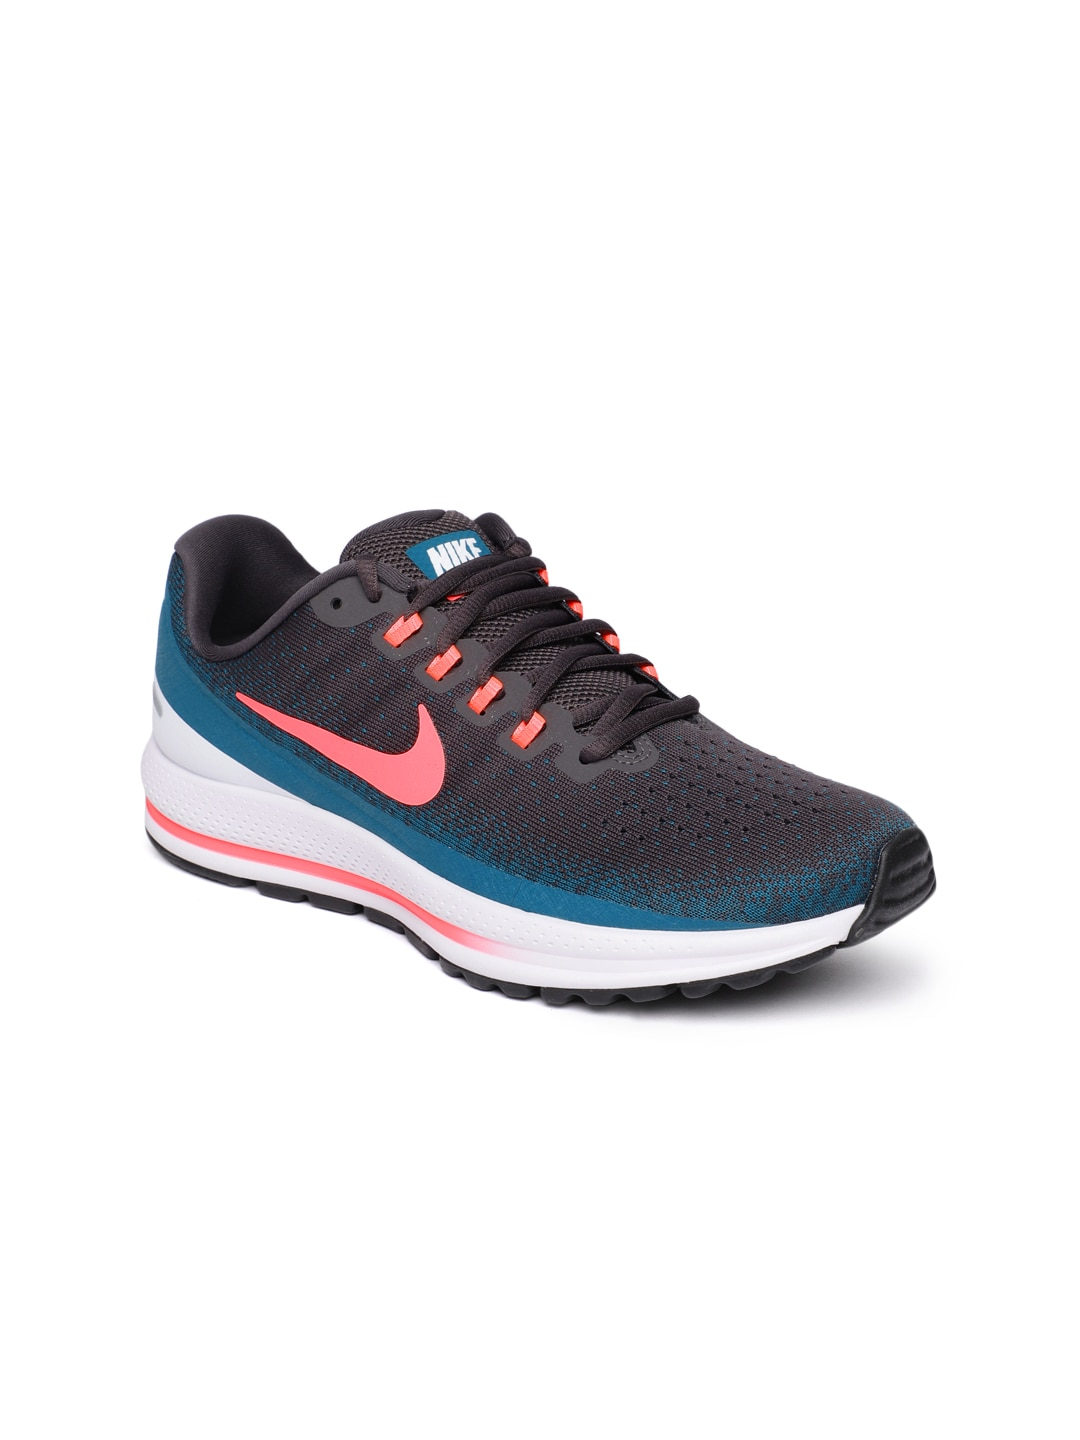 578e99cc742cd Nike Zoom Vomero - Buy Nike Zoom Vomero online in India